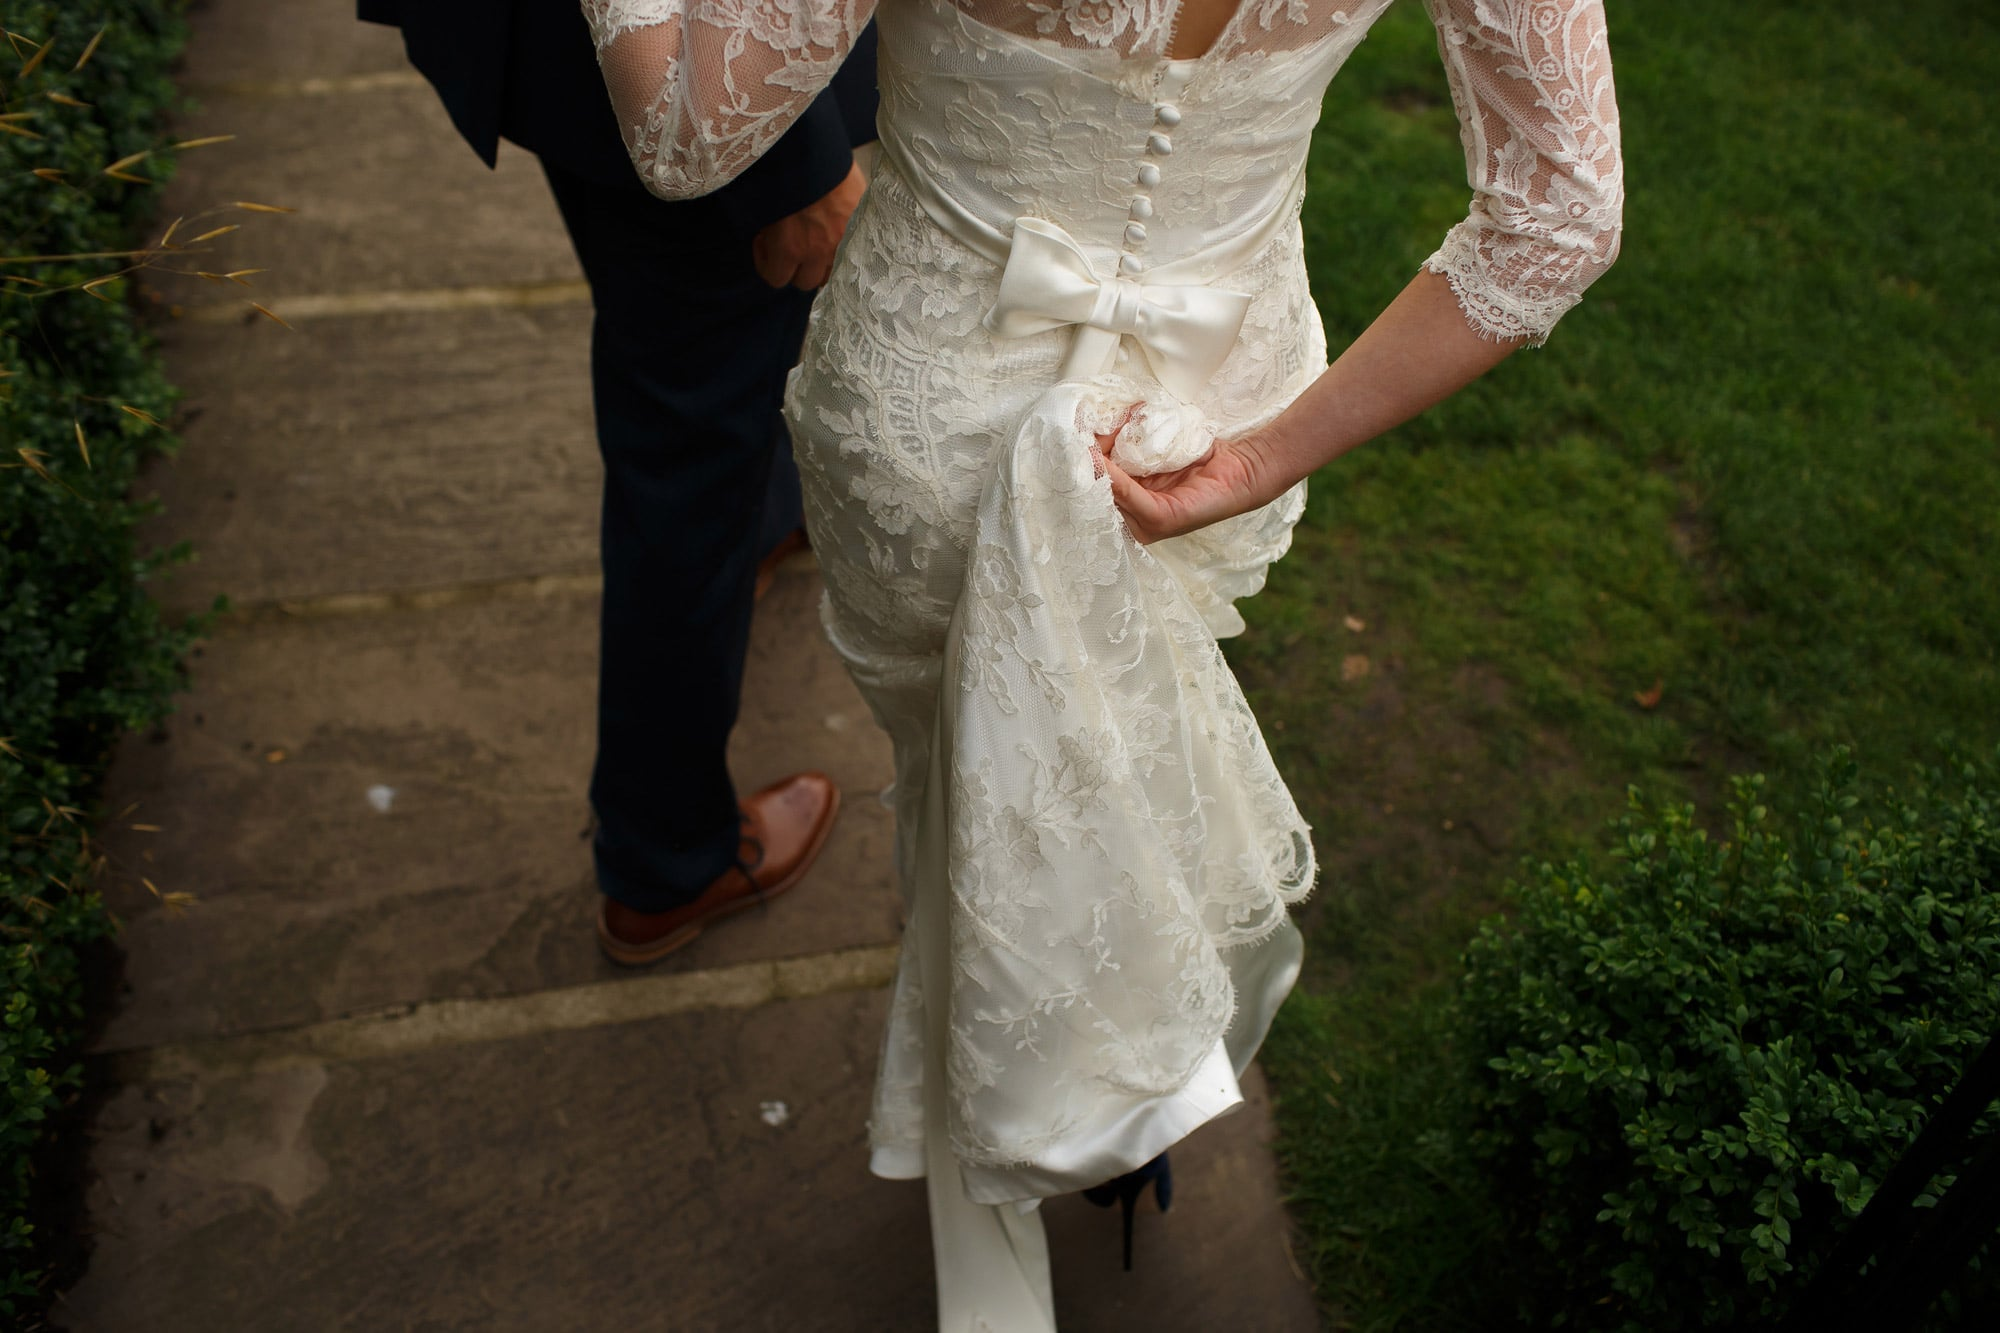 Bride wearing long sleeve Ivory lace wedding dress with bow detail holding up the train as she walks along the path of the walled garden at Grays Court wedding